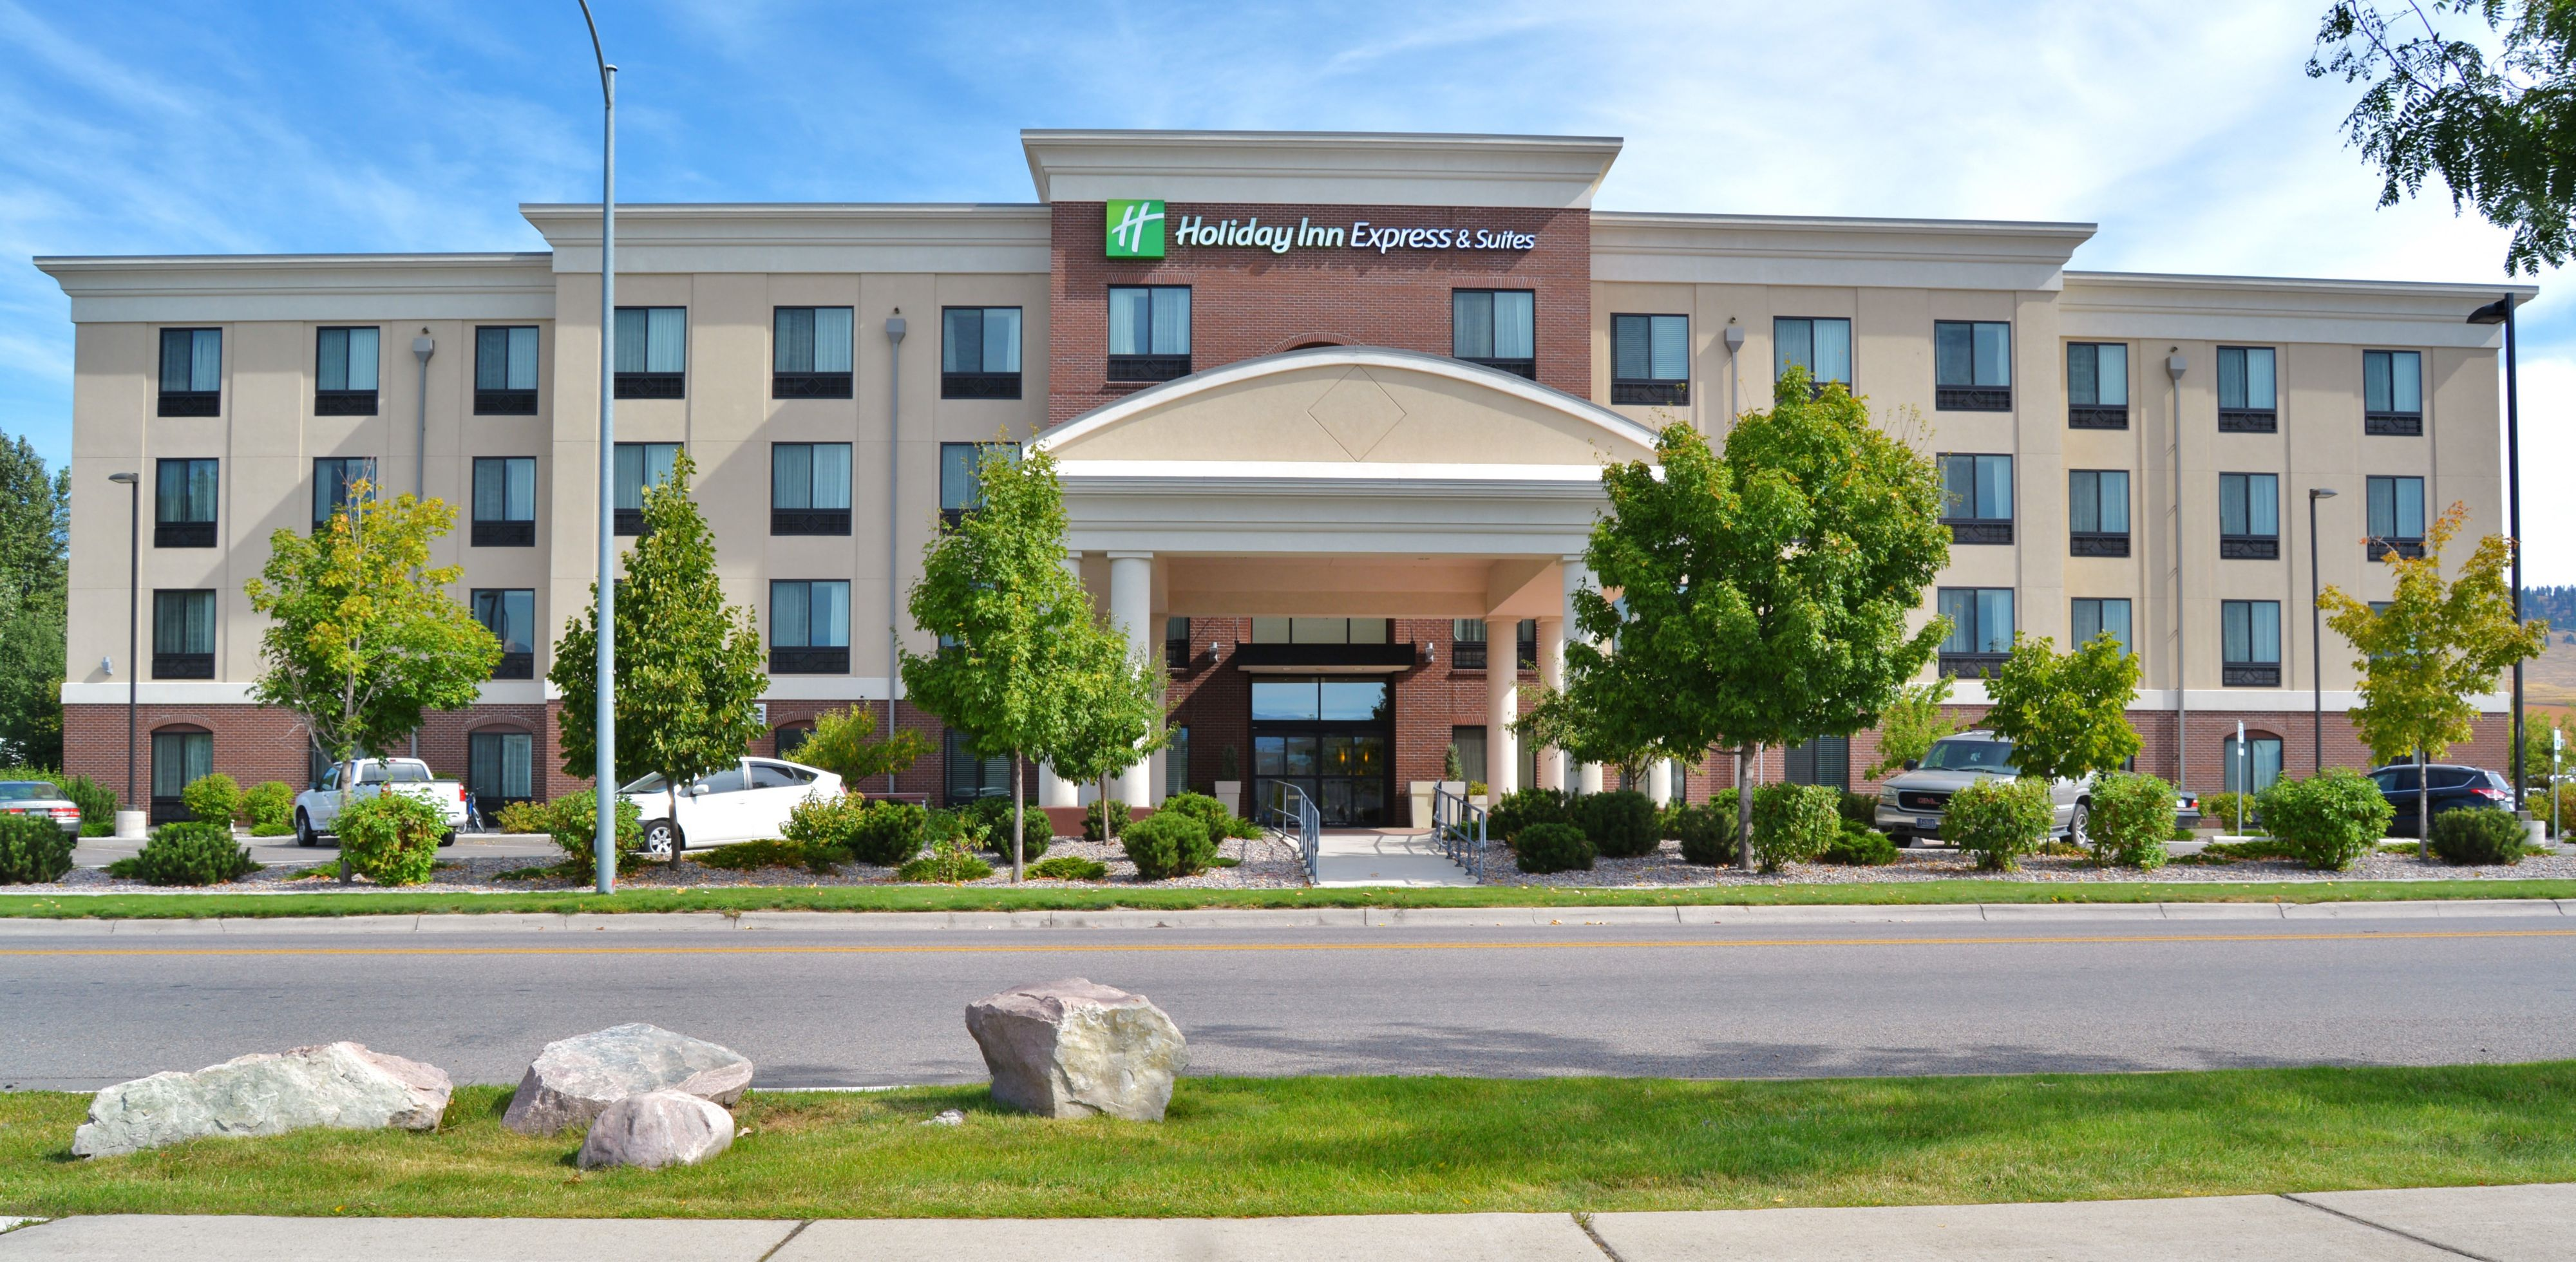 Holiday Inn Express Mishawaka (South Bend Area) image 5